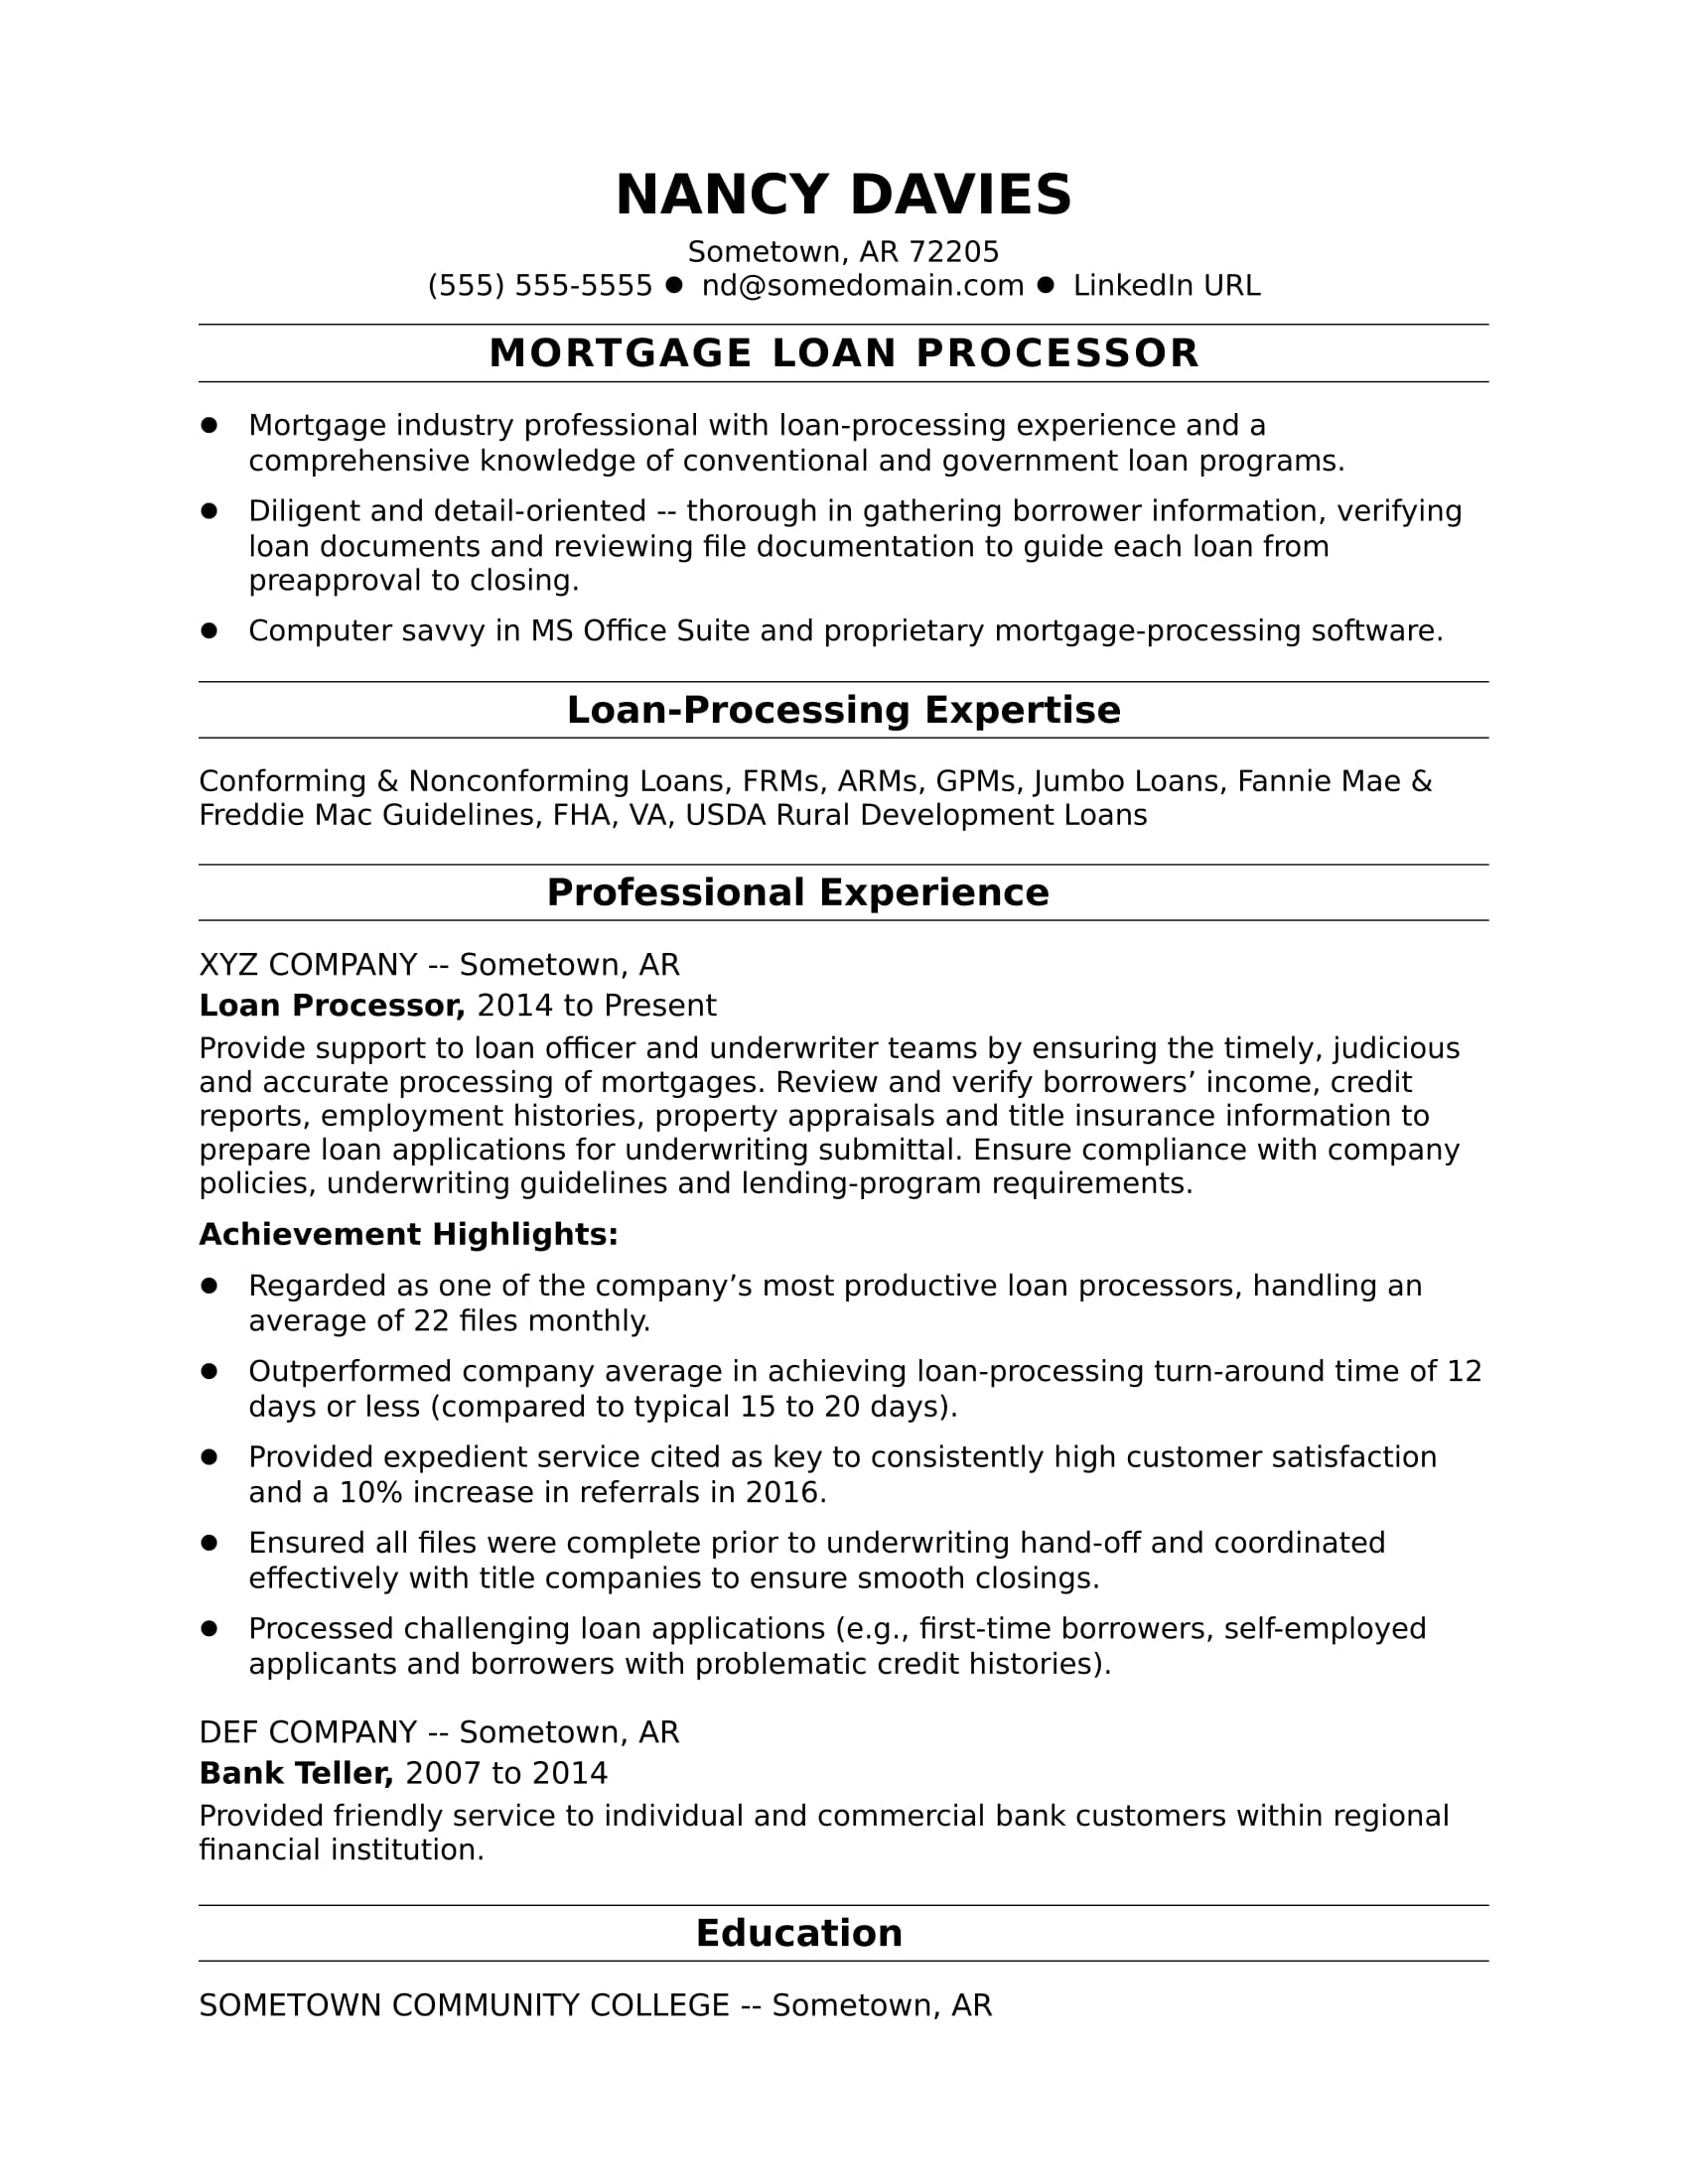 sample resume for a mortgage loan processor - Professional Resume Samples